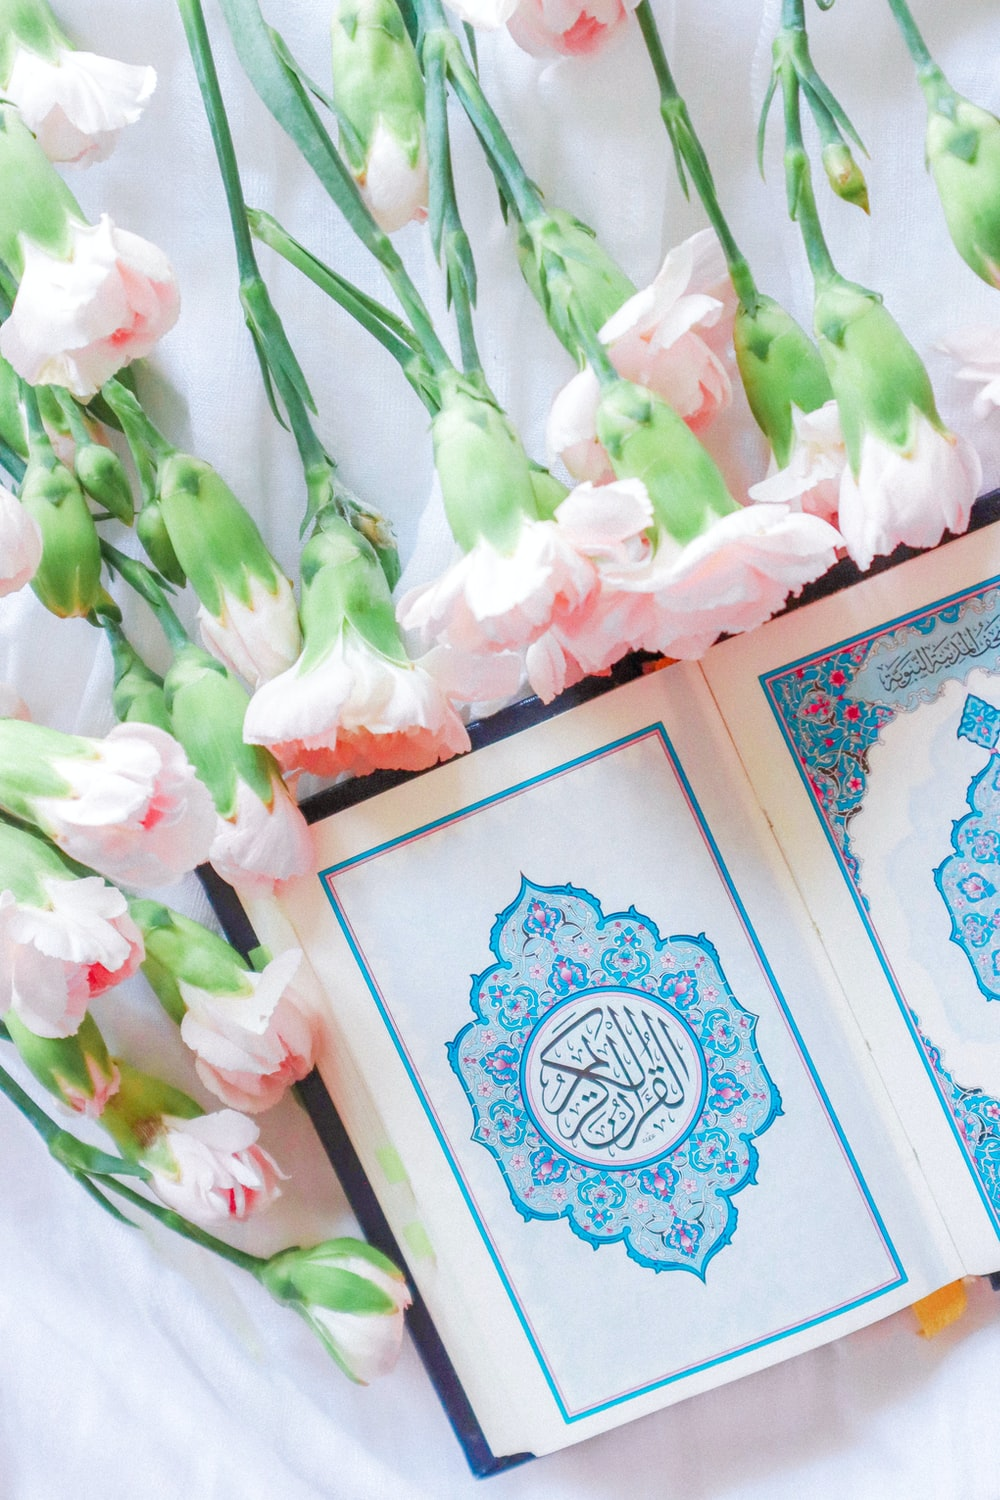 pink and white roses on blue and white floral box